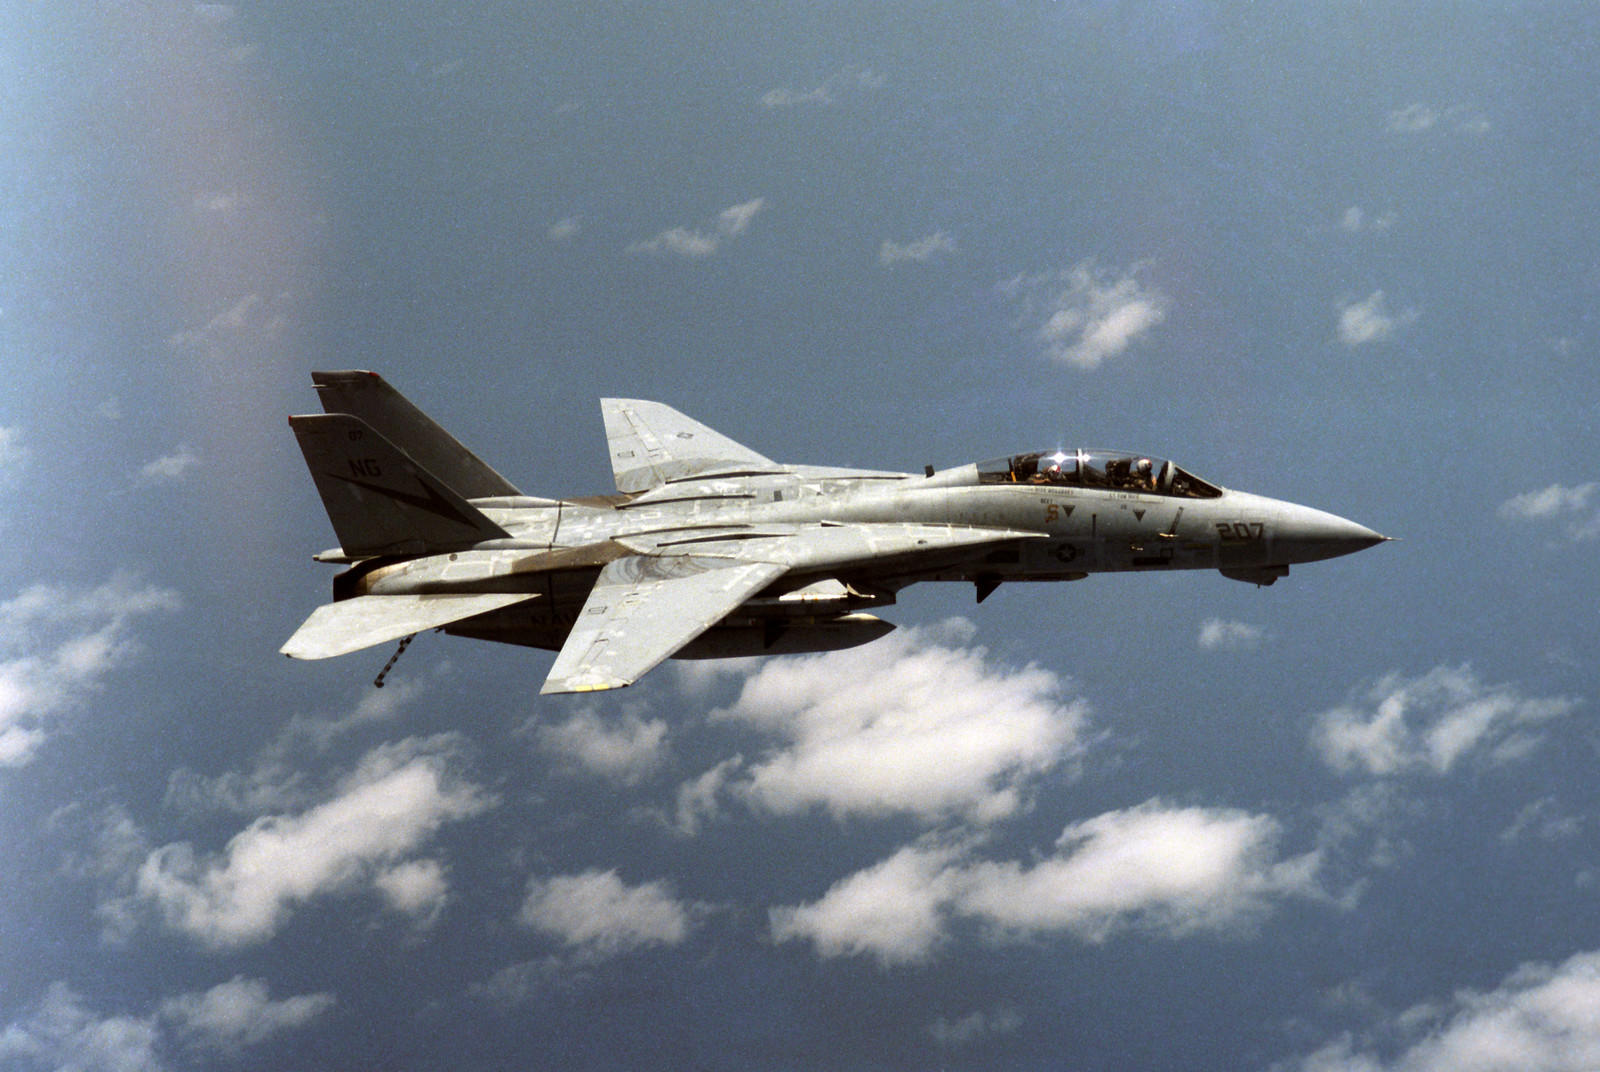 F-14A_VF-24_right_side_view_with_AIM-7s_